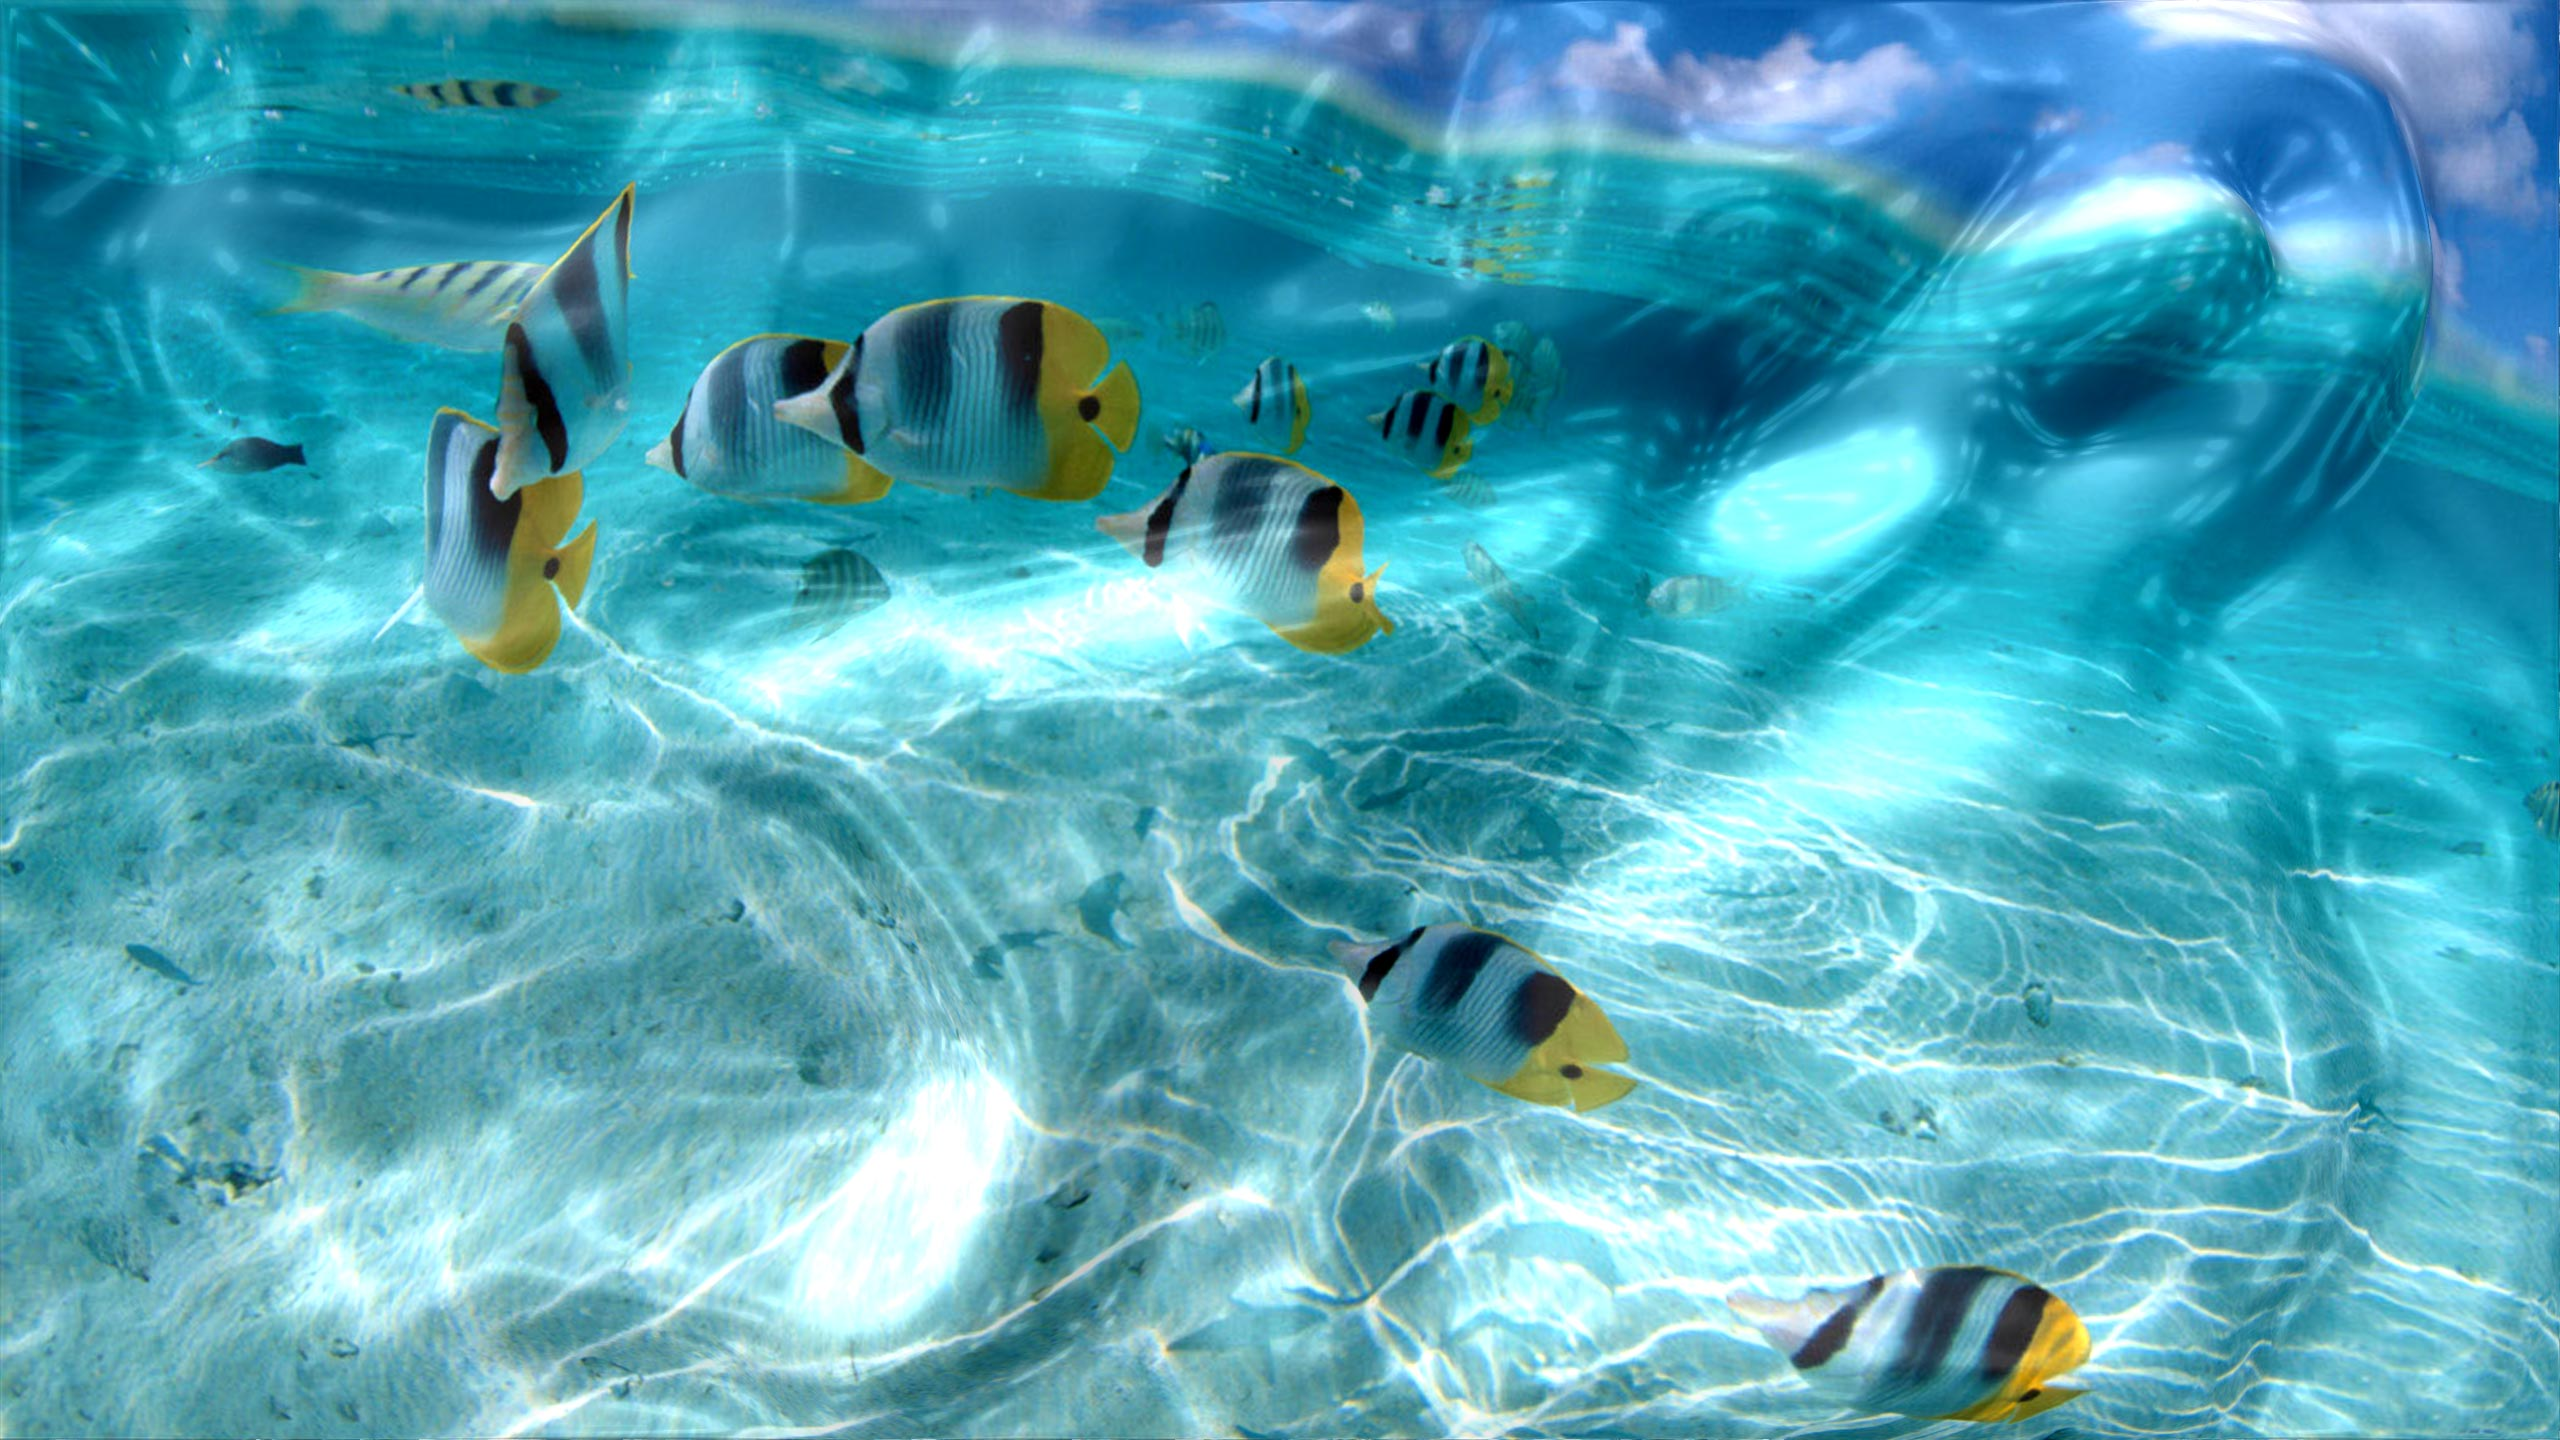 Watery Desktop 3D